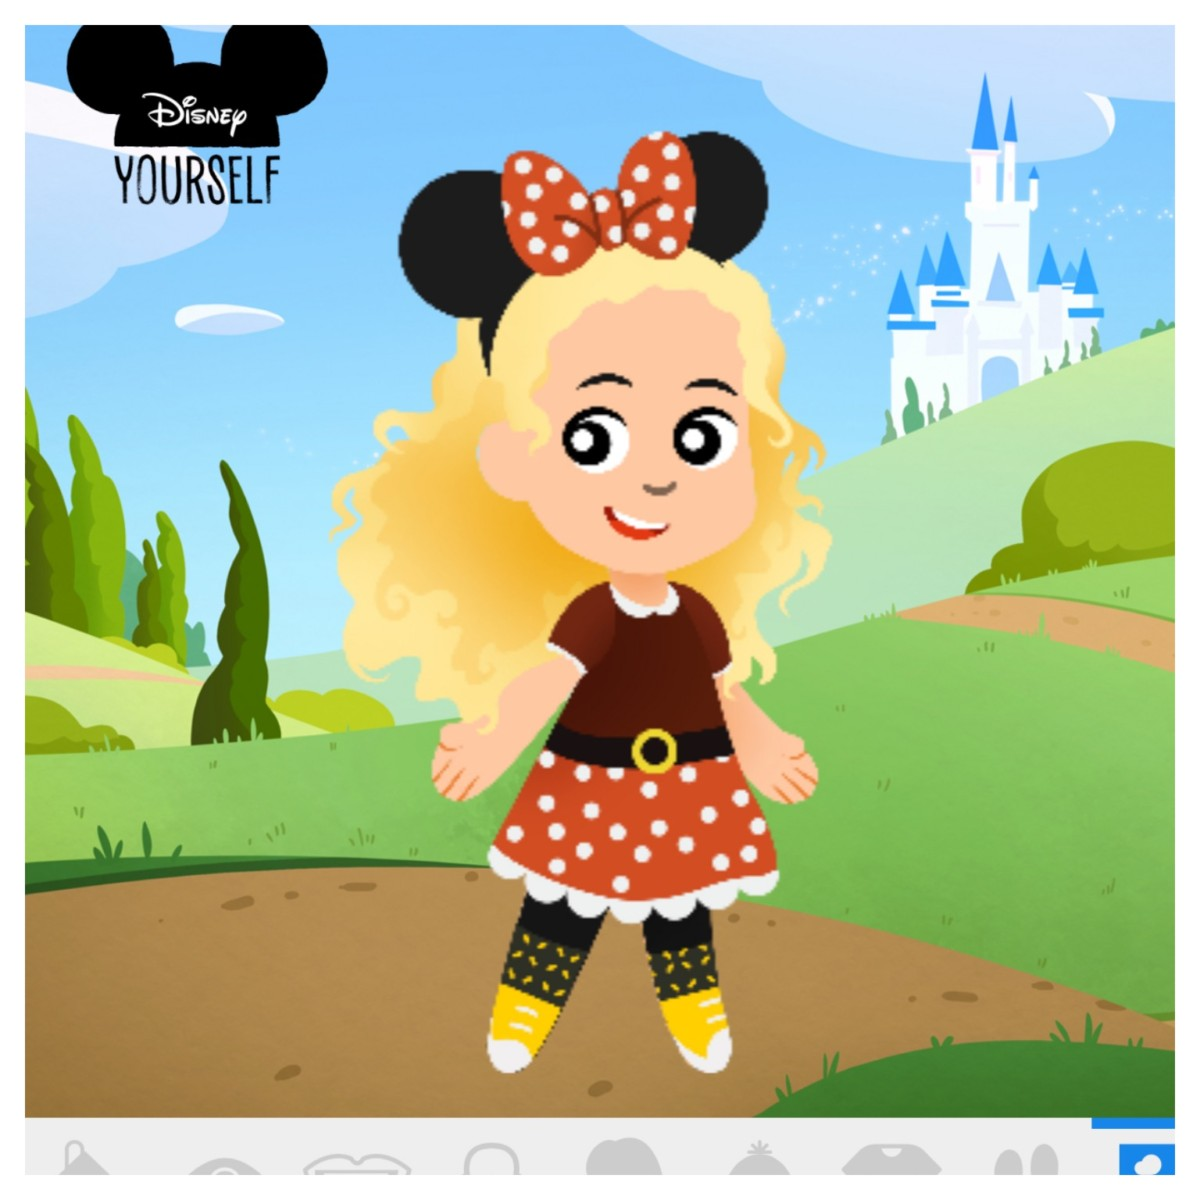 Disney Yourself ~ Create Your Own (details below) Show us yours in the comments! 1